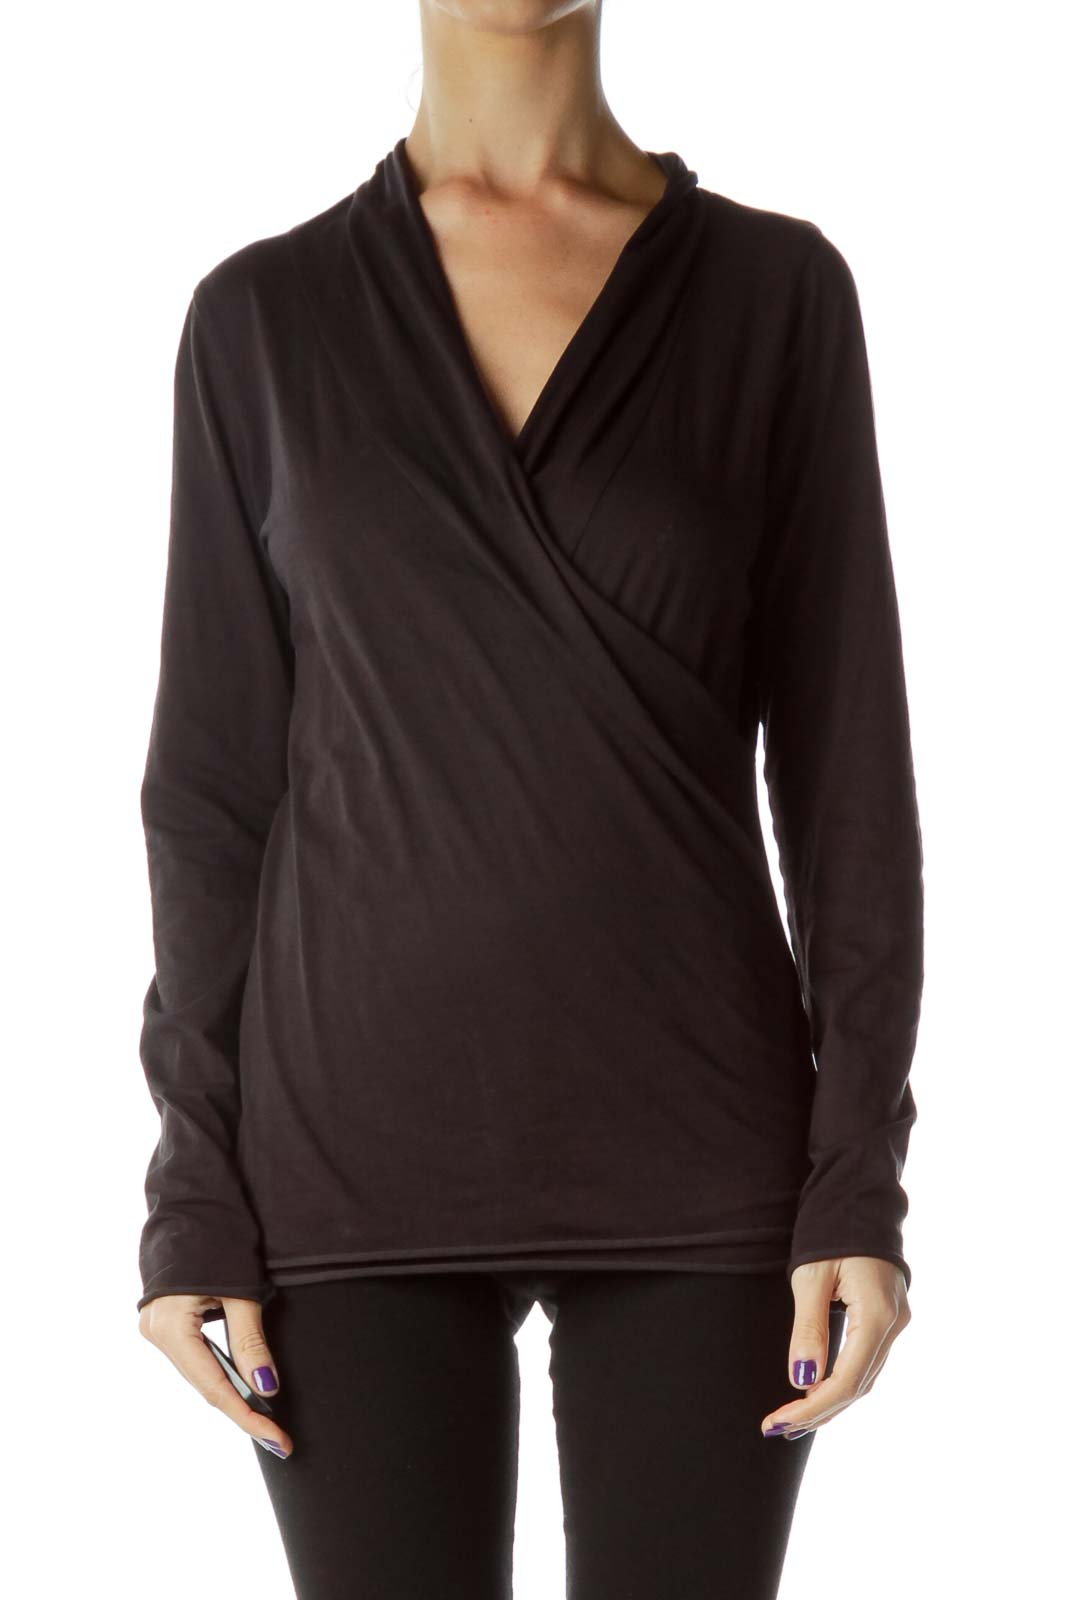 Black Surplice Long Sleeve Top